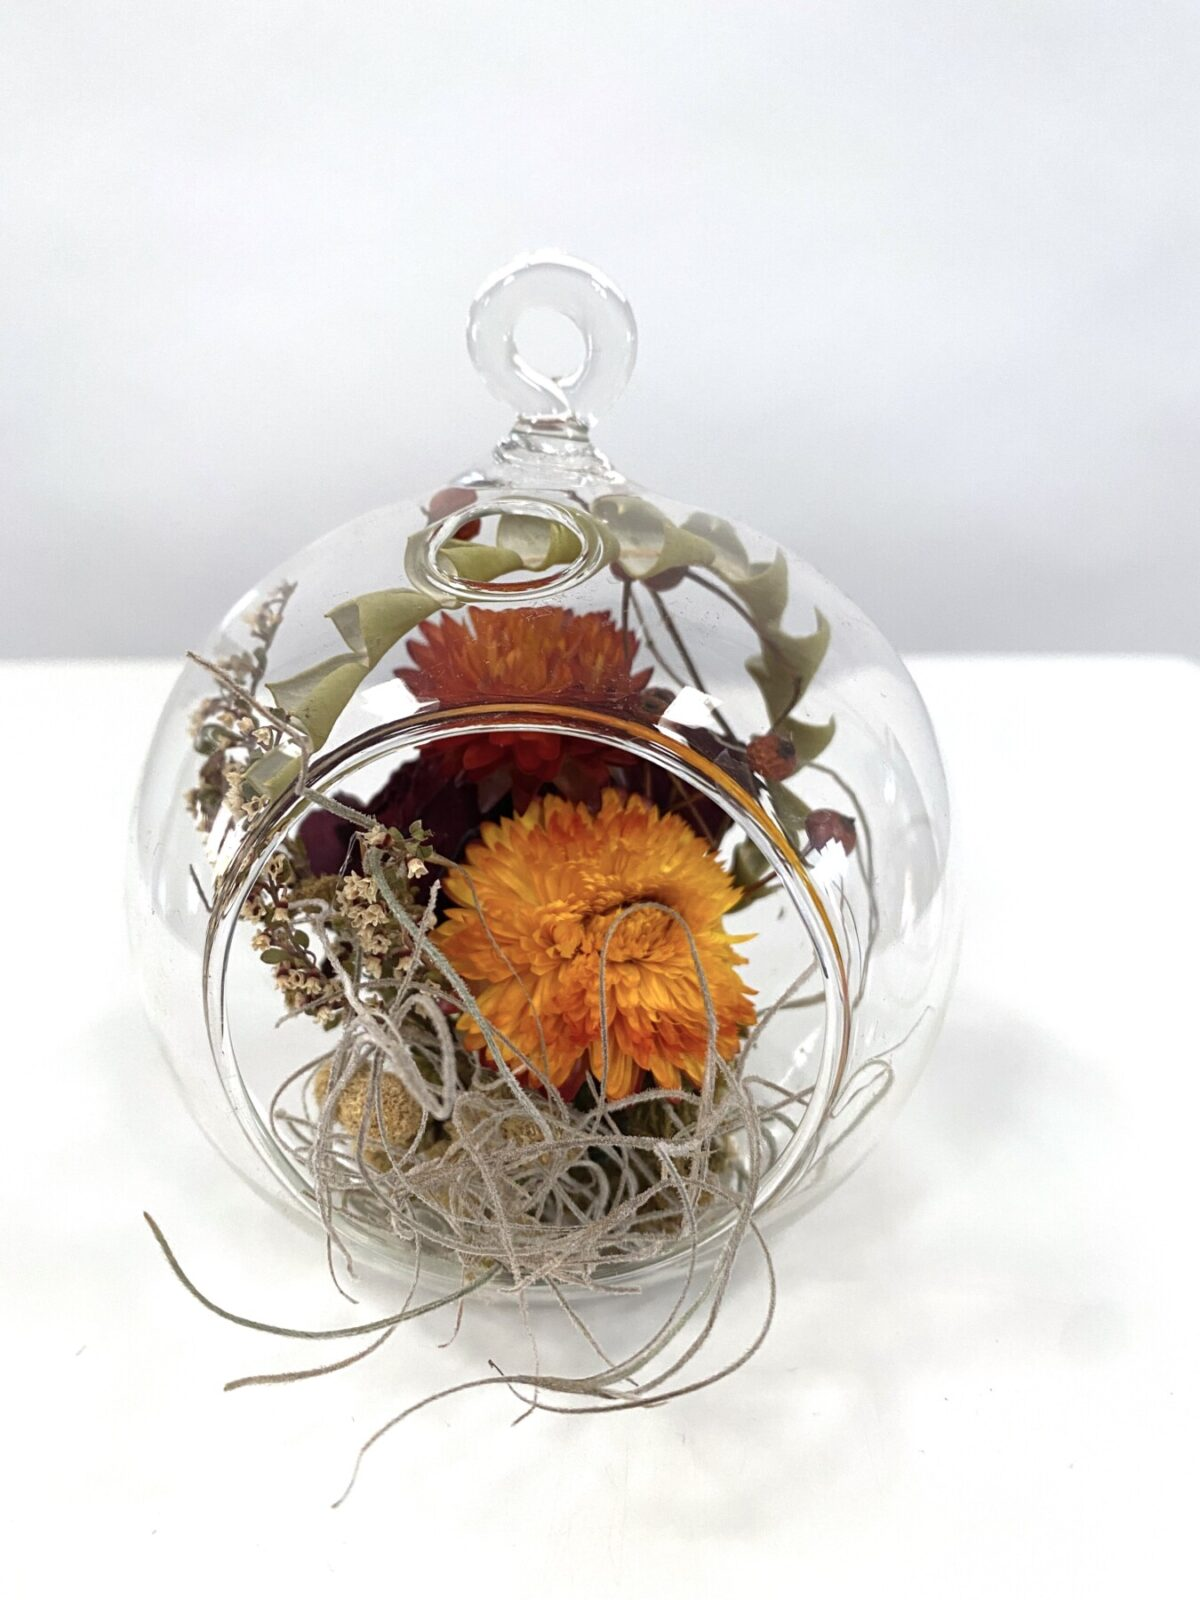 Everlasting Dried Flowers, Secure 2 | Order Online Gifts & Flower Delivery Melbourne, Thrive Flowers